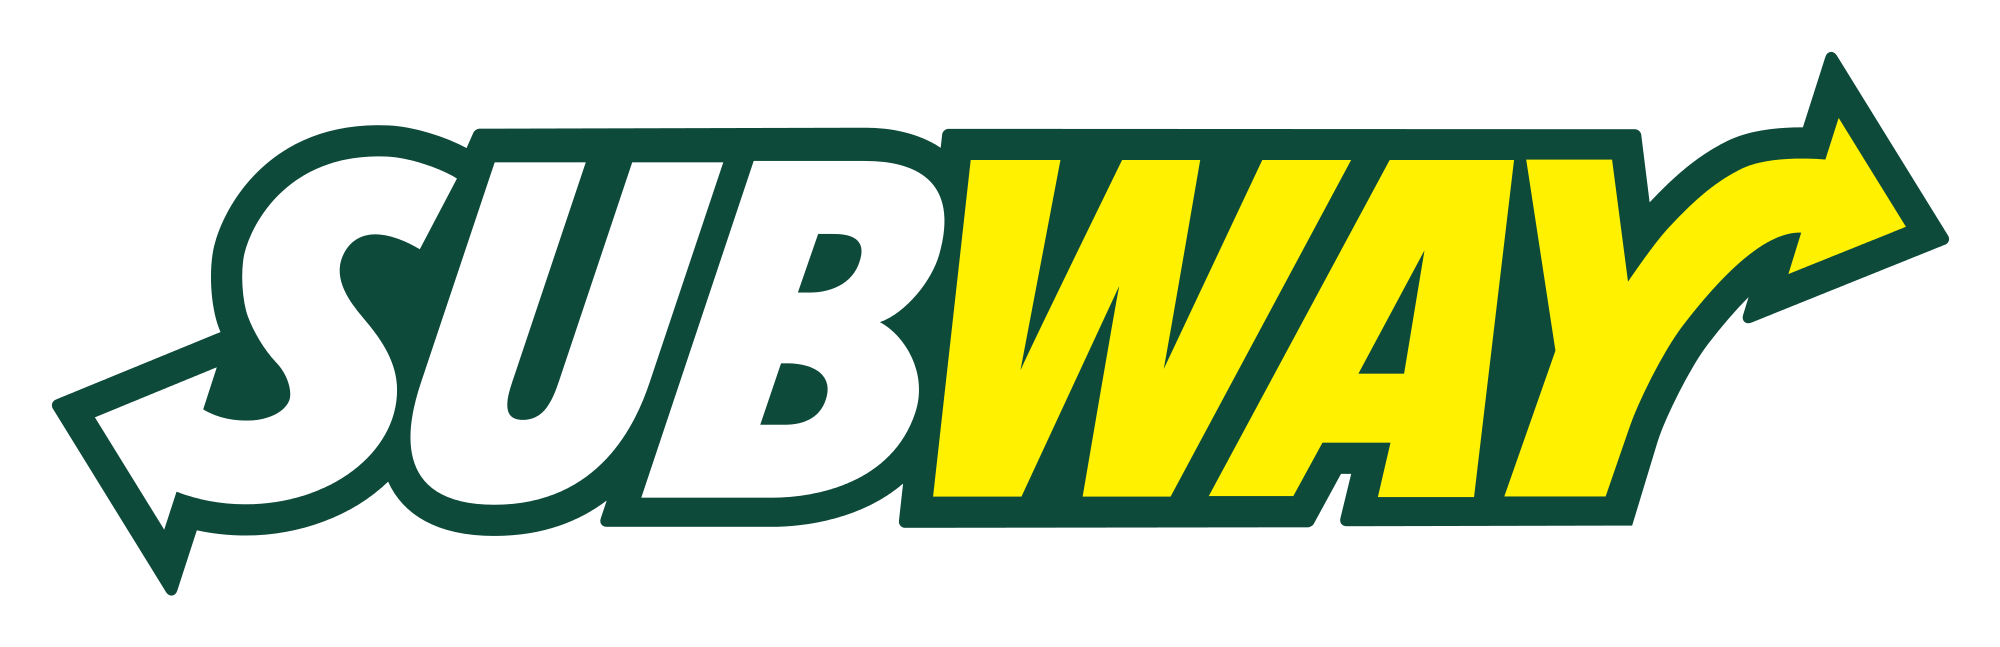 Subway_Eat_Fresh_Logo